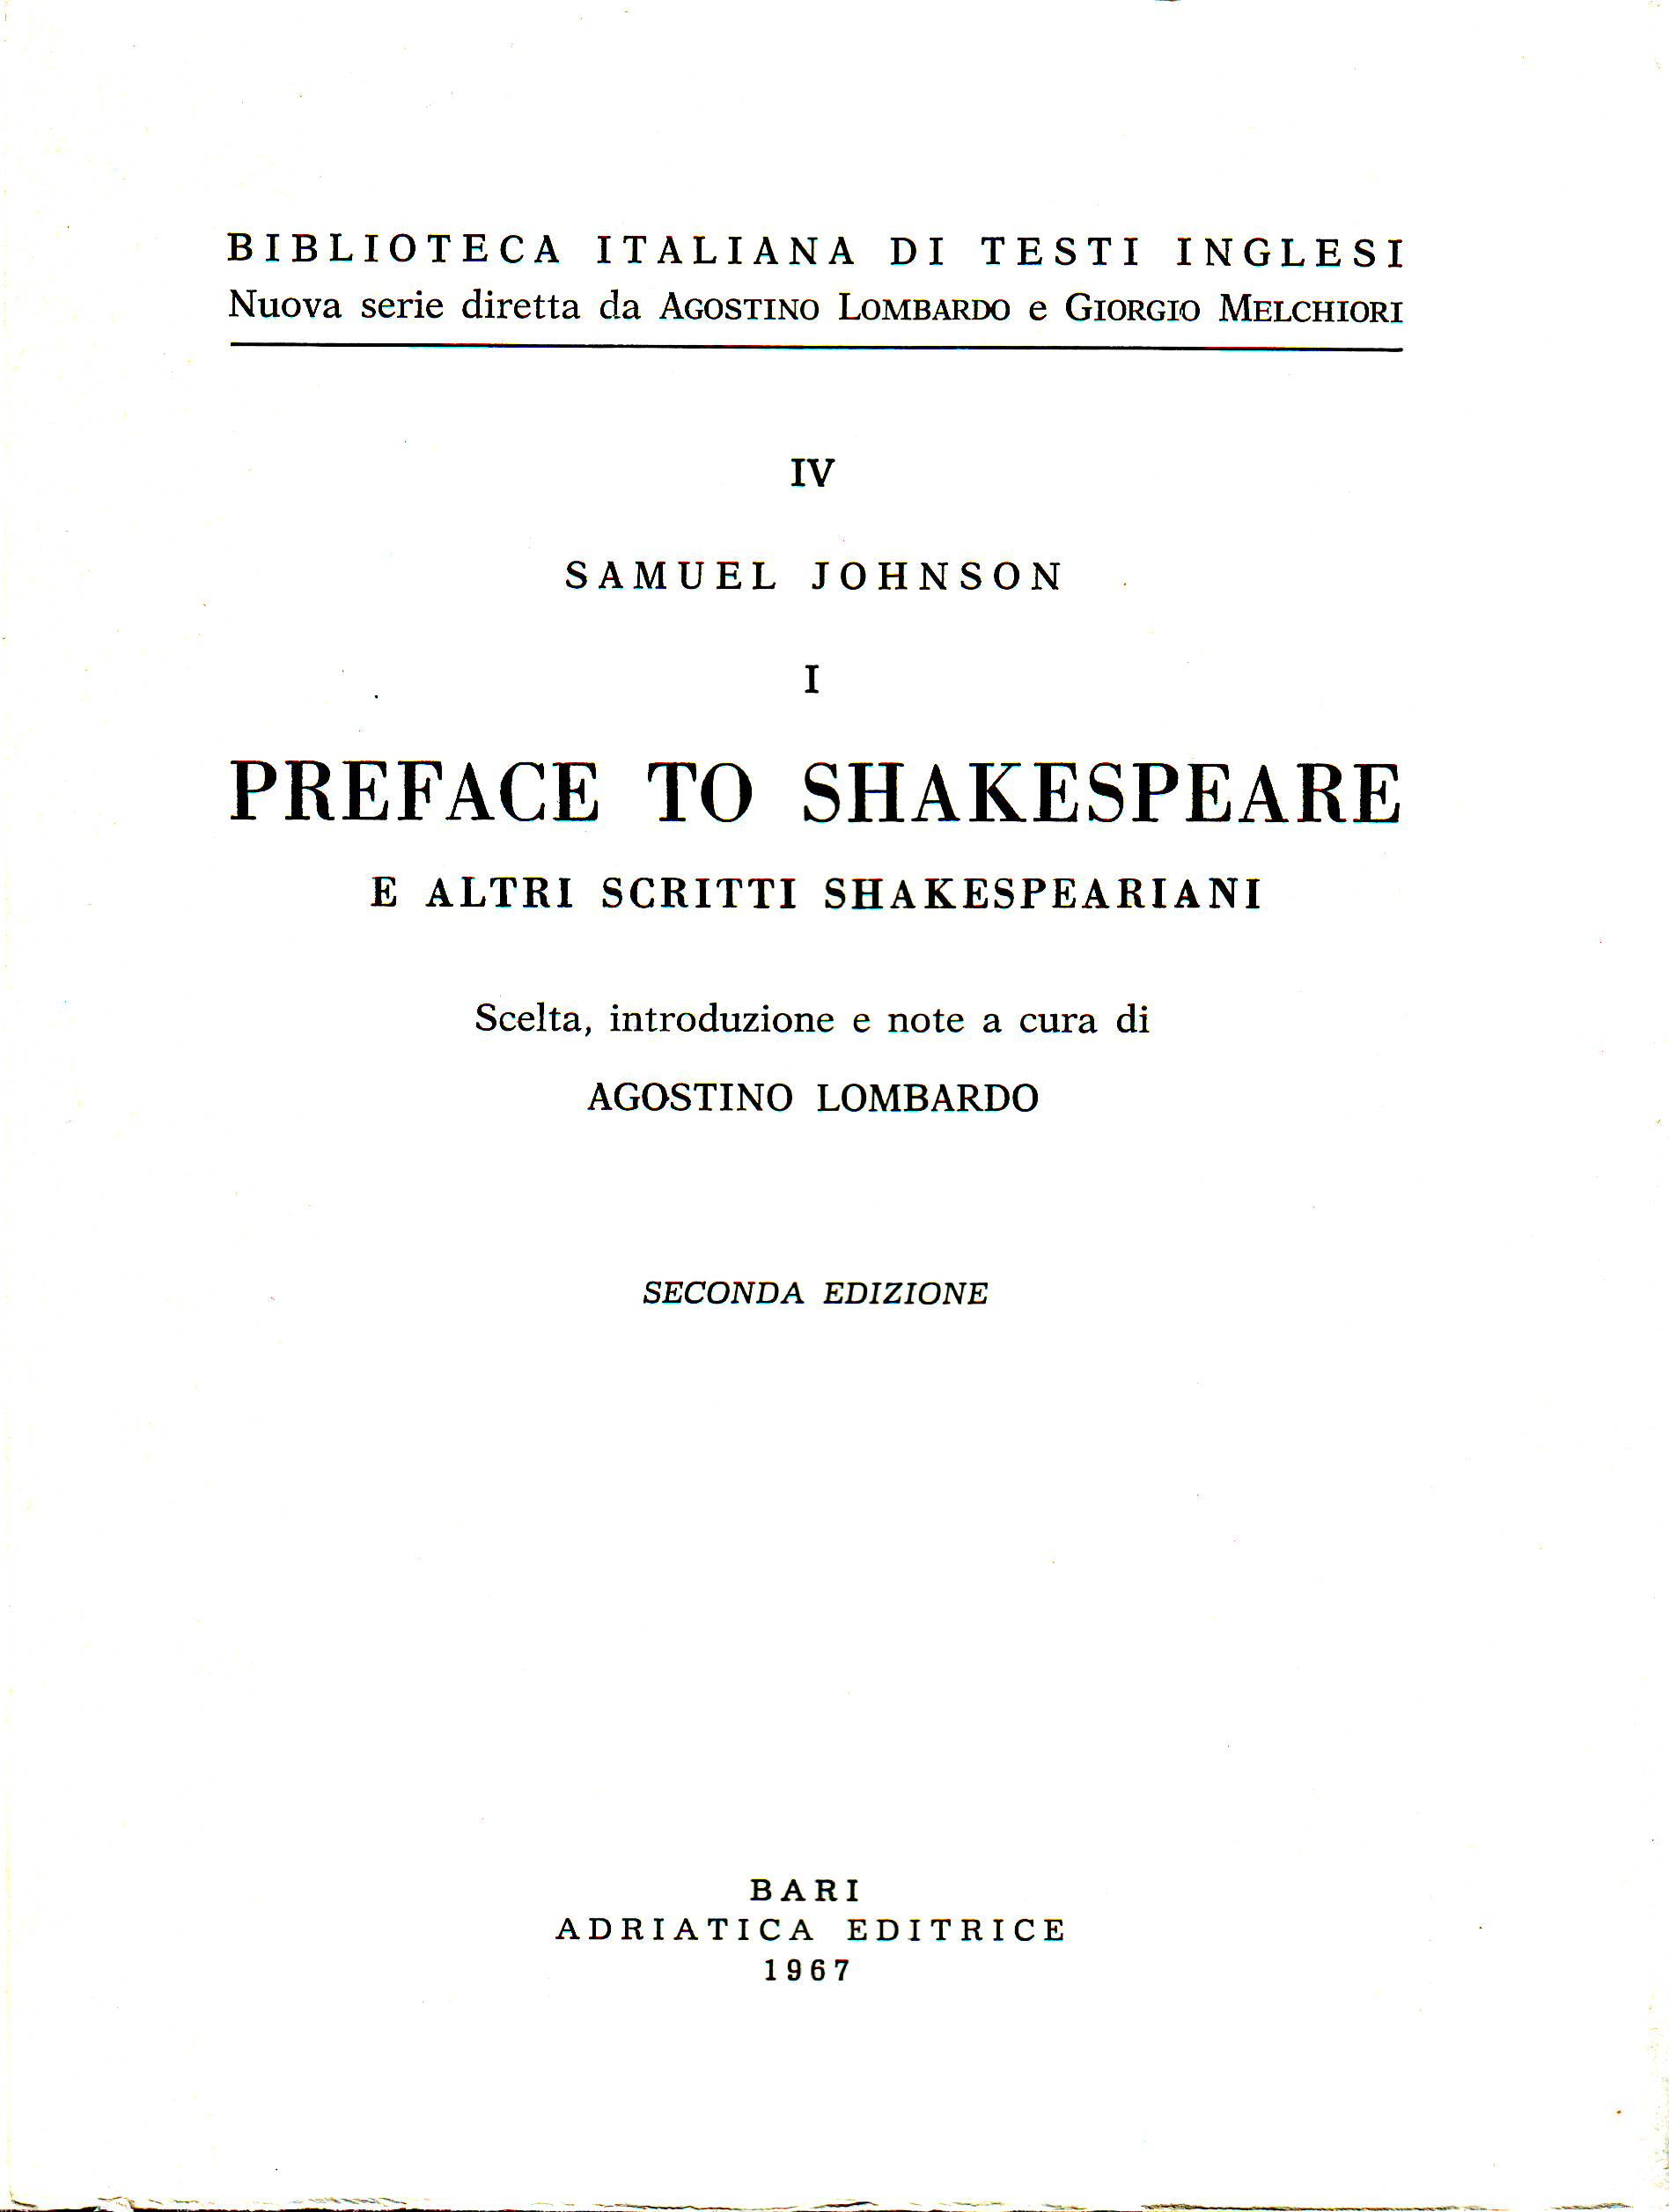 Preface to Shakespea...